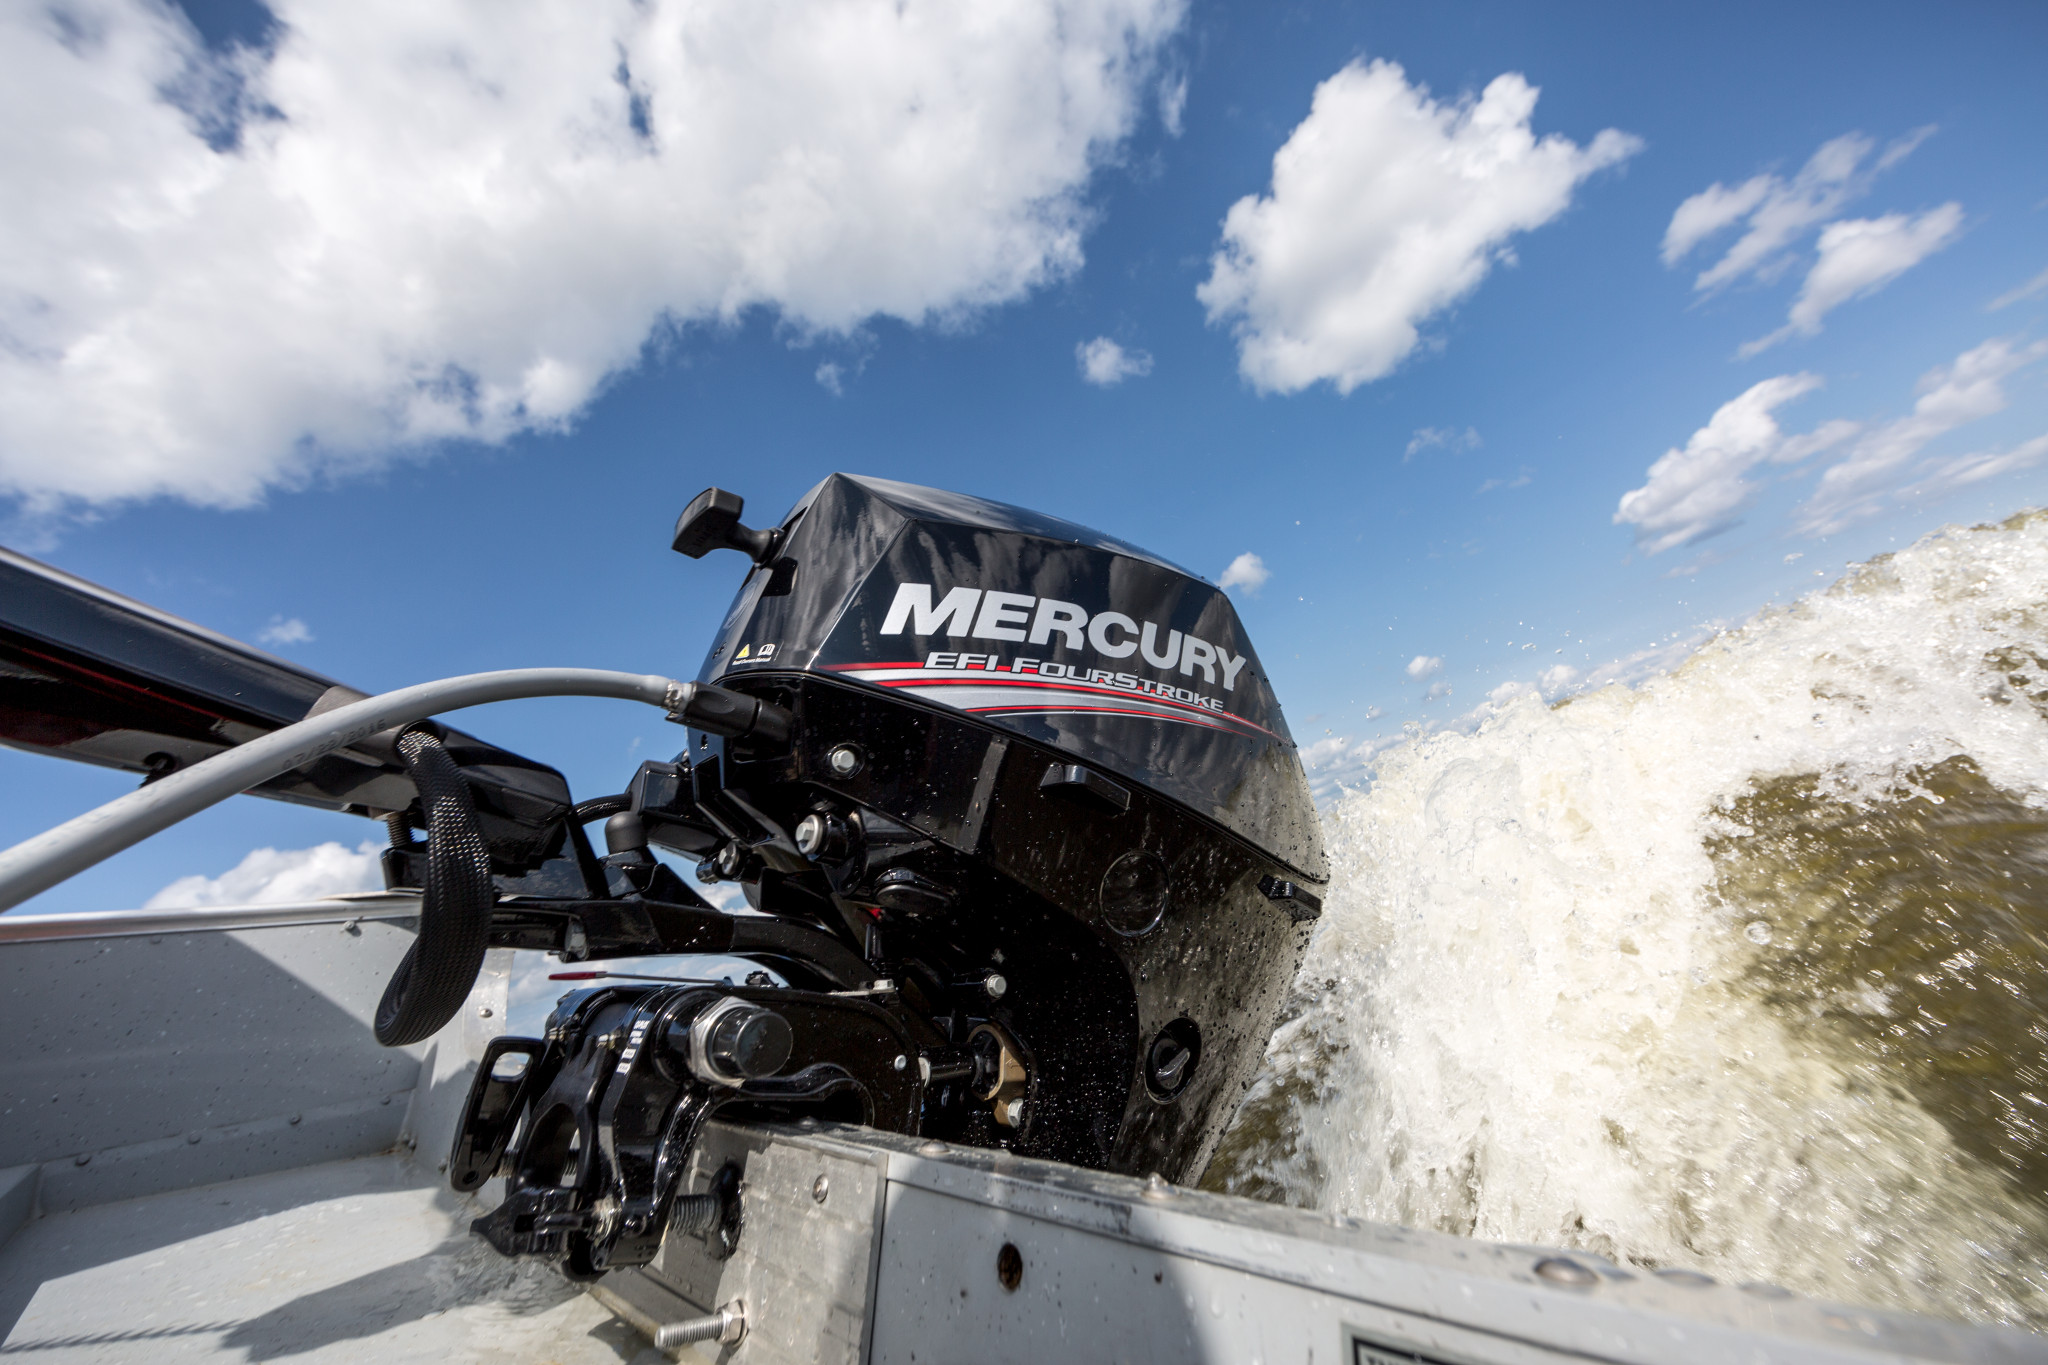 Mercury outboard and Pro Kicker motor